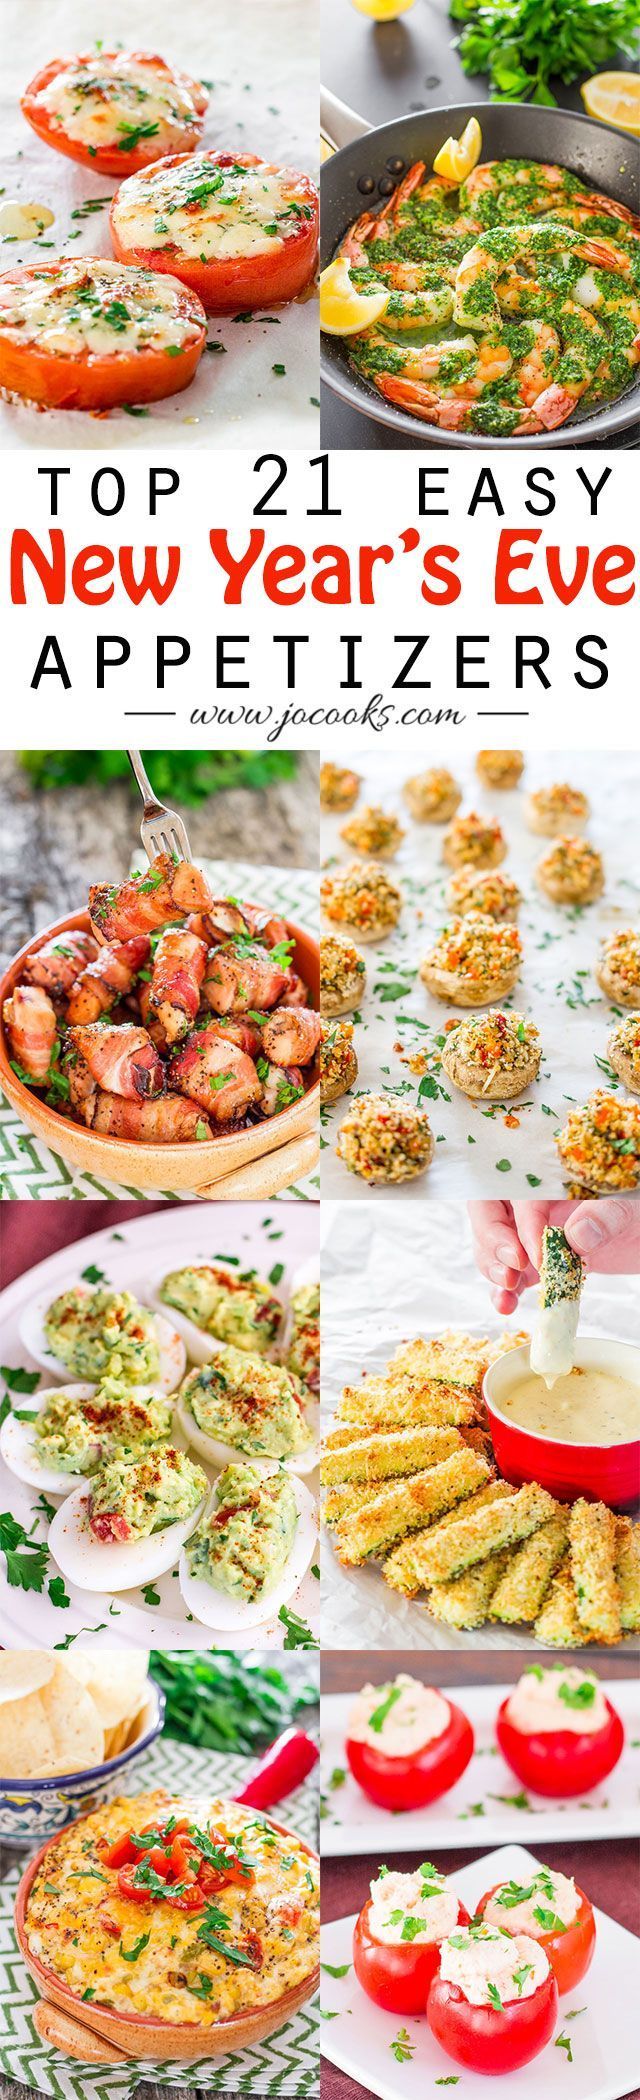 21 Top Easy New Year's Eve Appetizers. Yum! Decorate your table with Afloral.com and show off your apps!